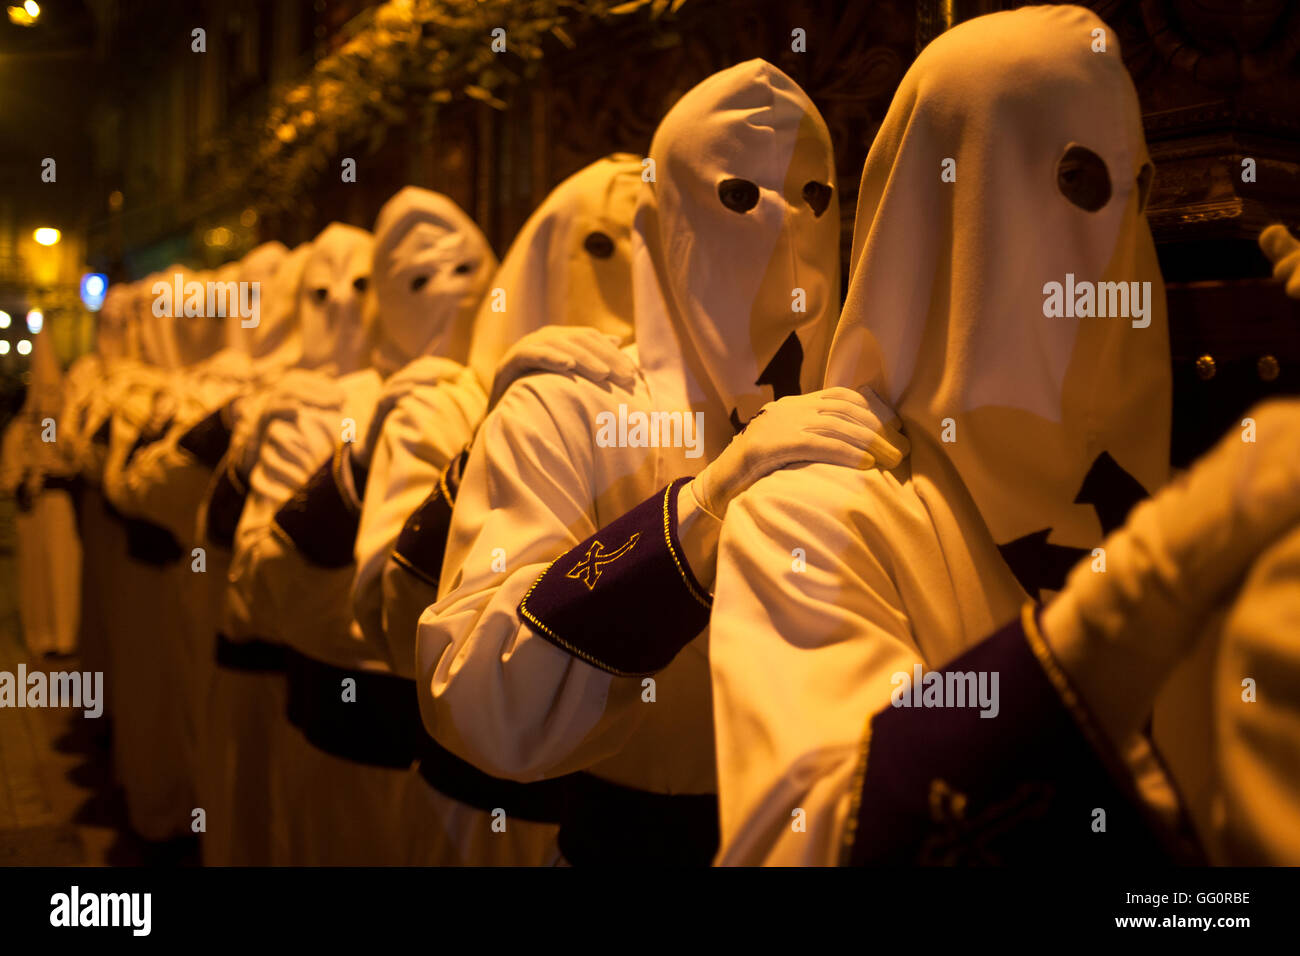 Hooded penitents hold a throne during an Easter Holy Week procession in Astorga, Castilla y Leon, Spain. - Stock Image